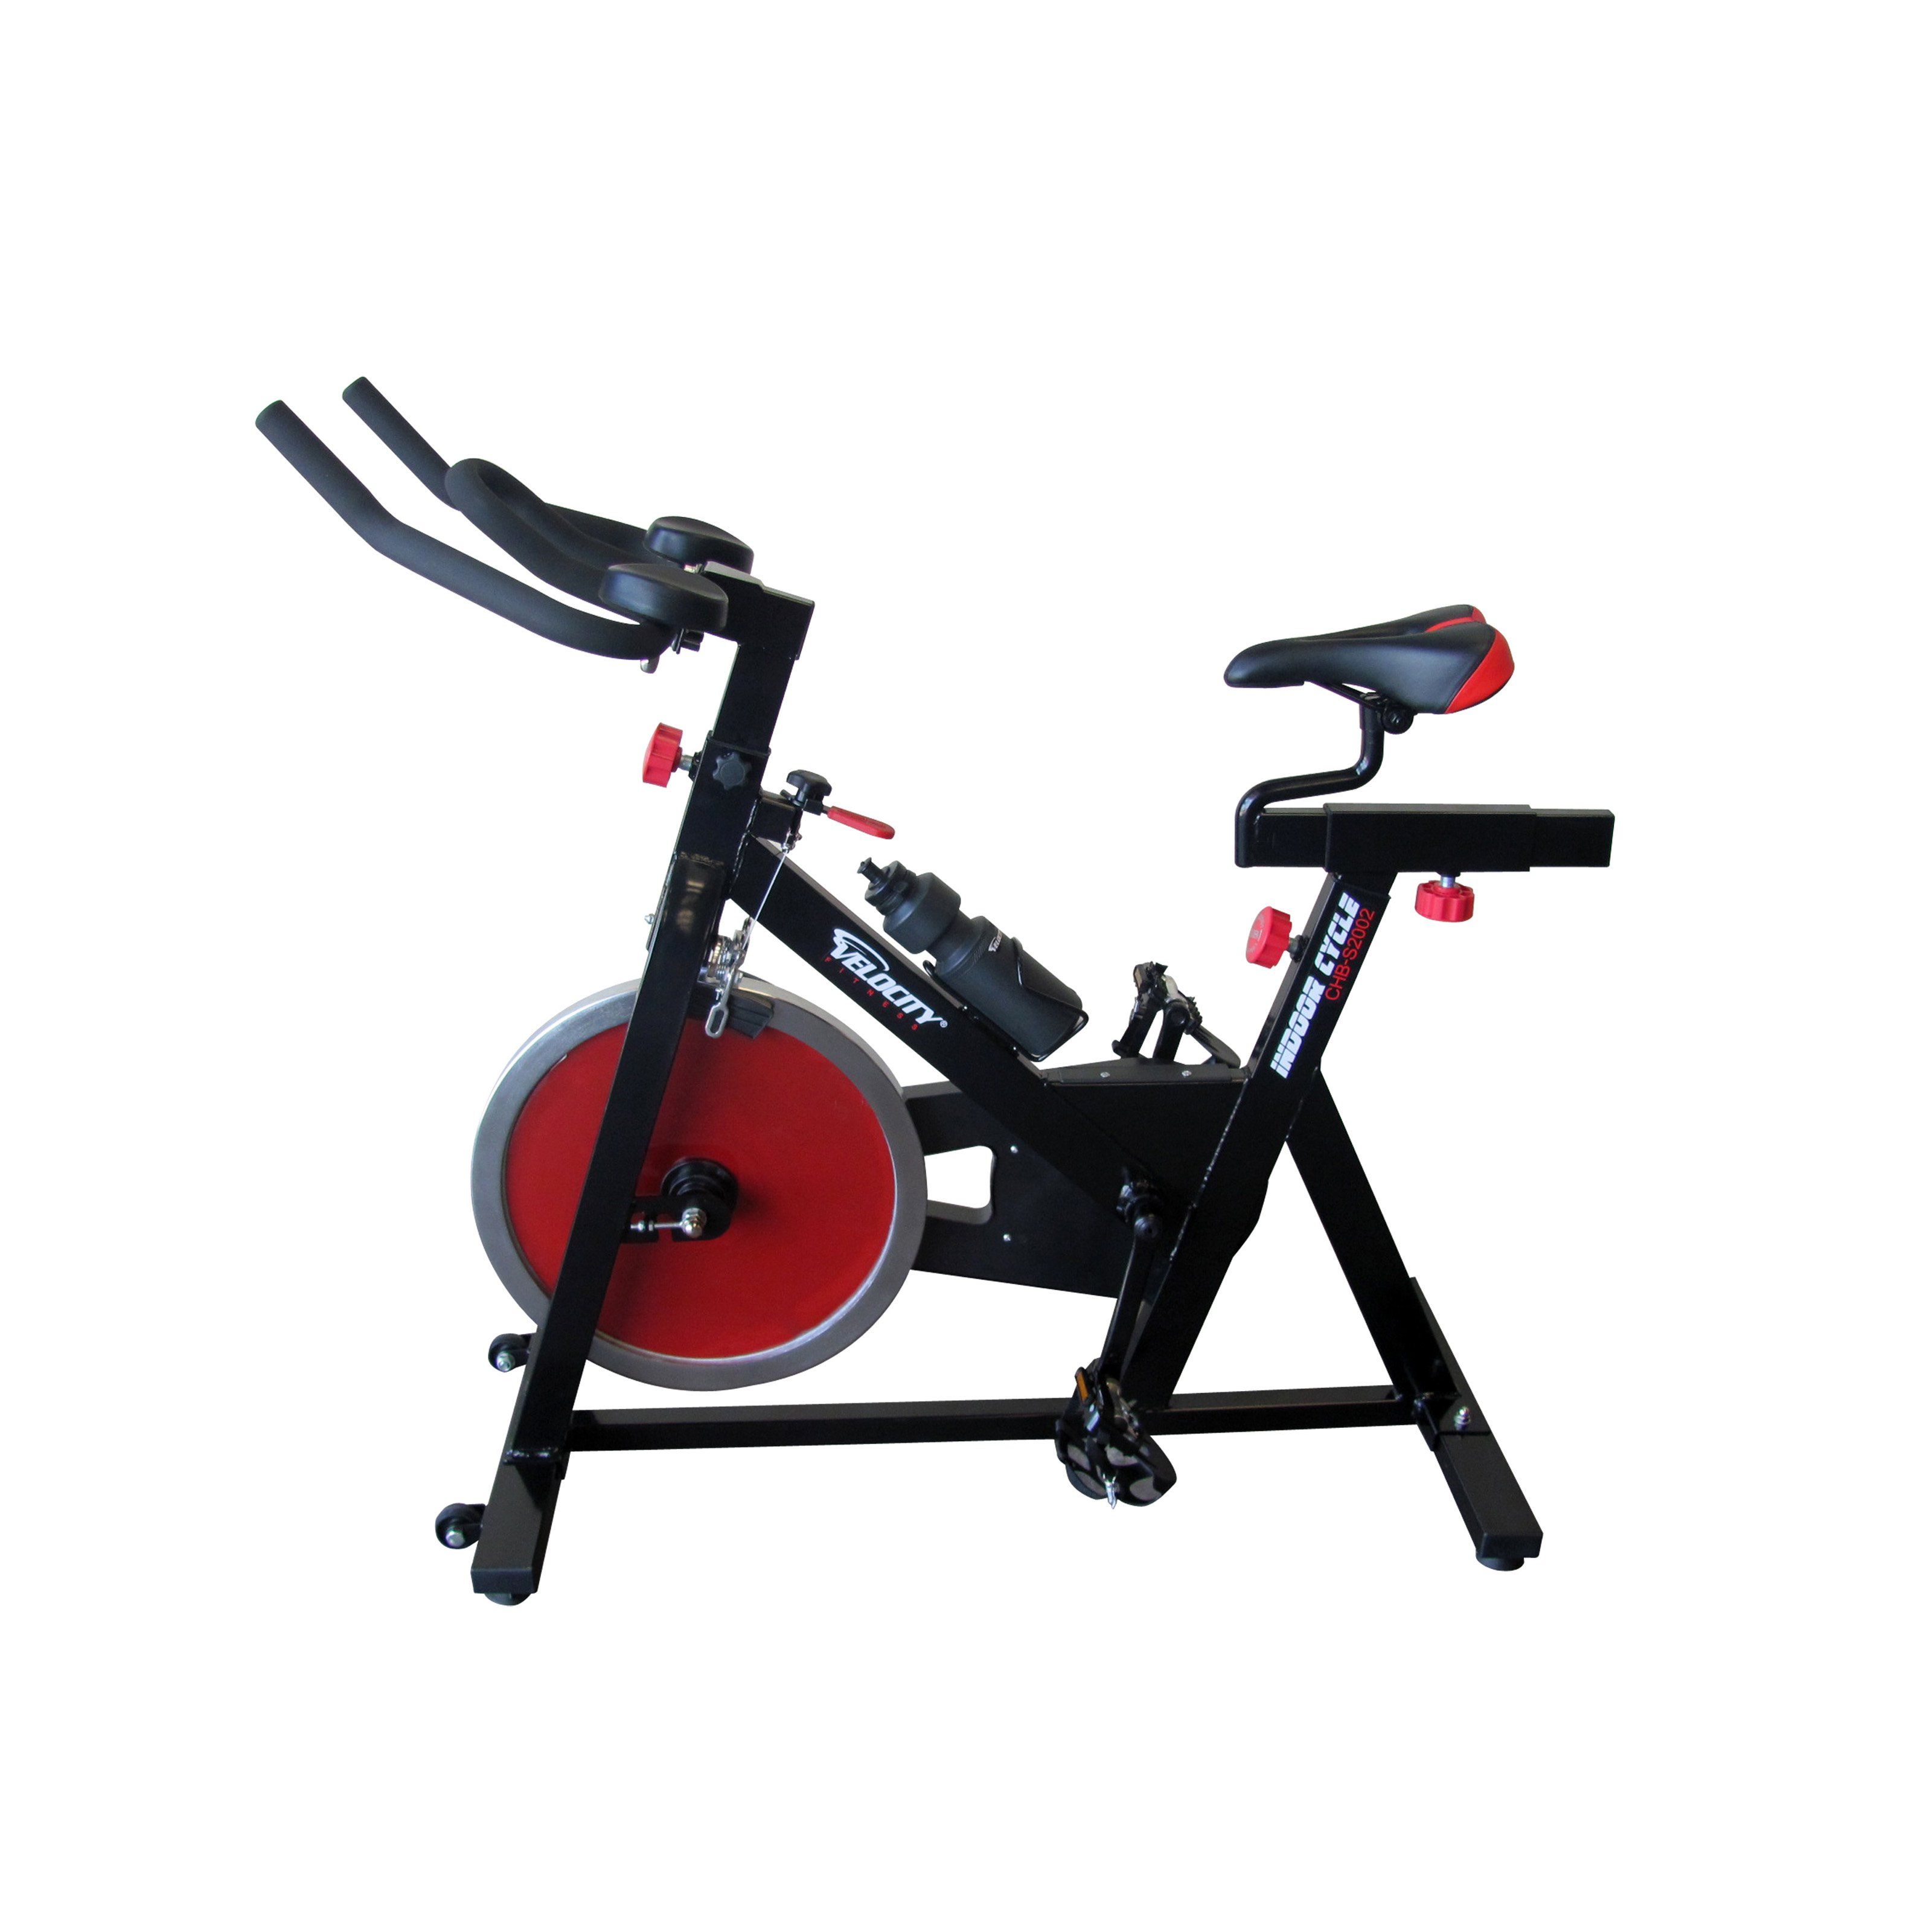 best choice products stationary recumbent exercise bike cardio fitness equipment walmartcom